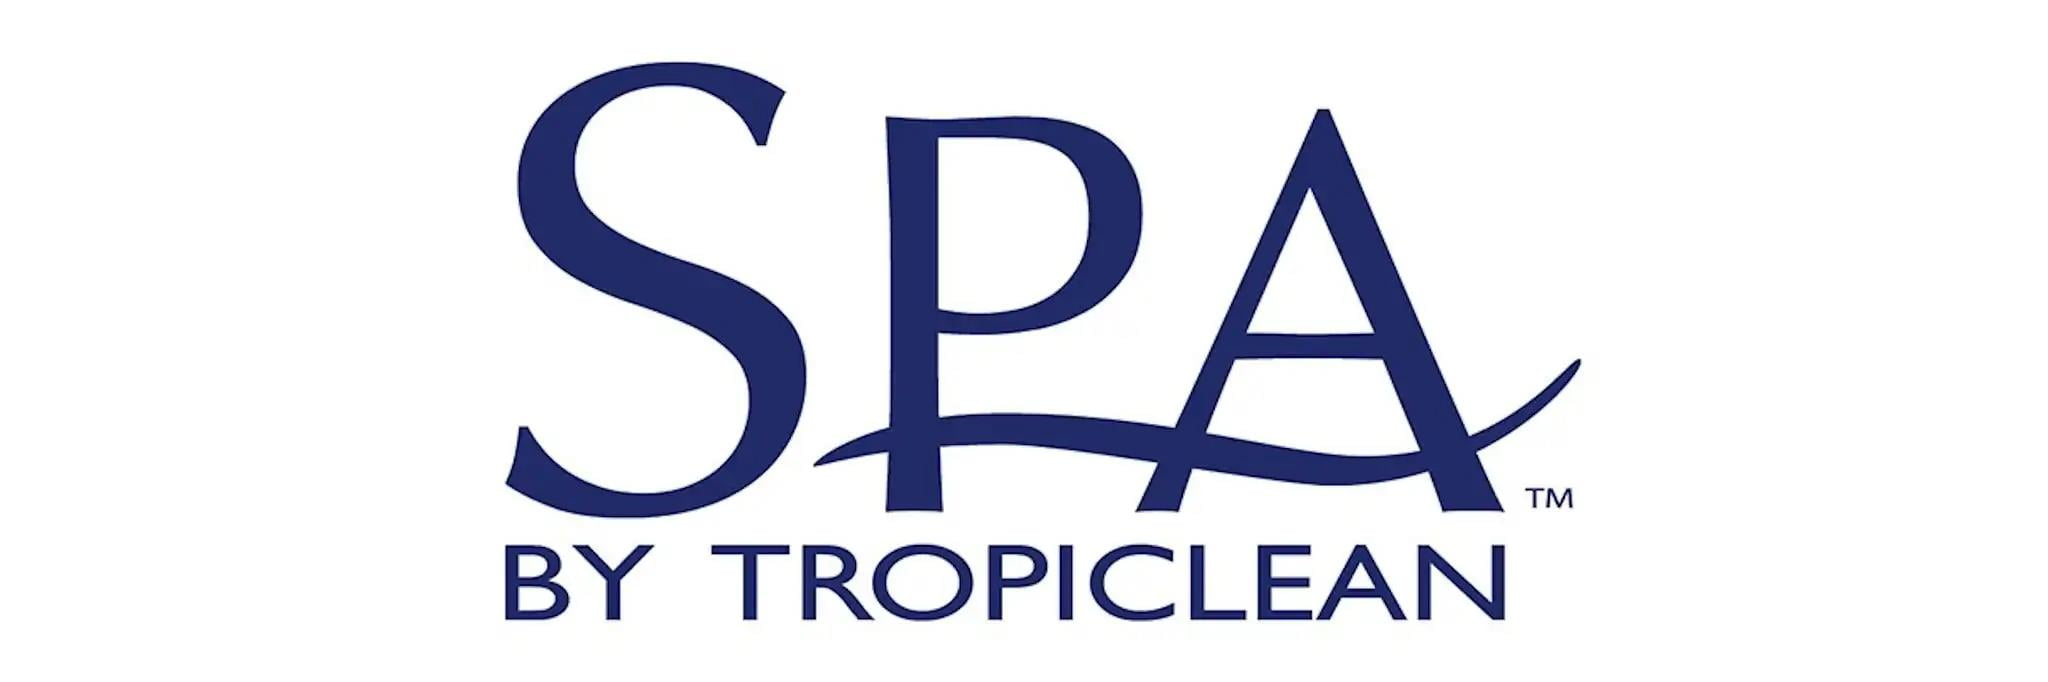 SPA by Tropiclean logo